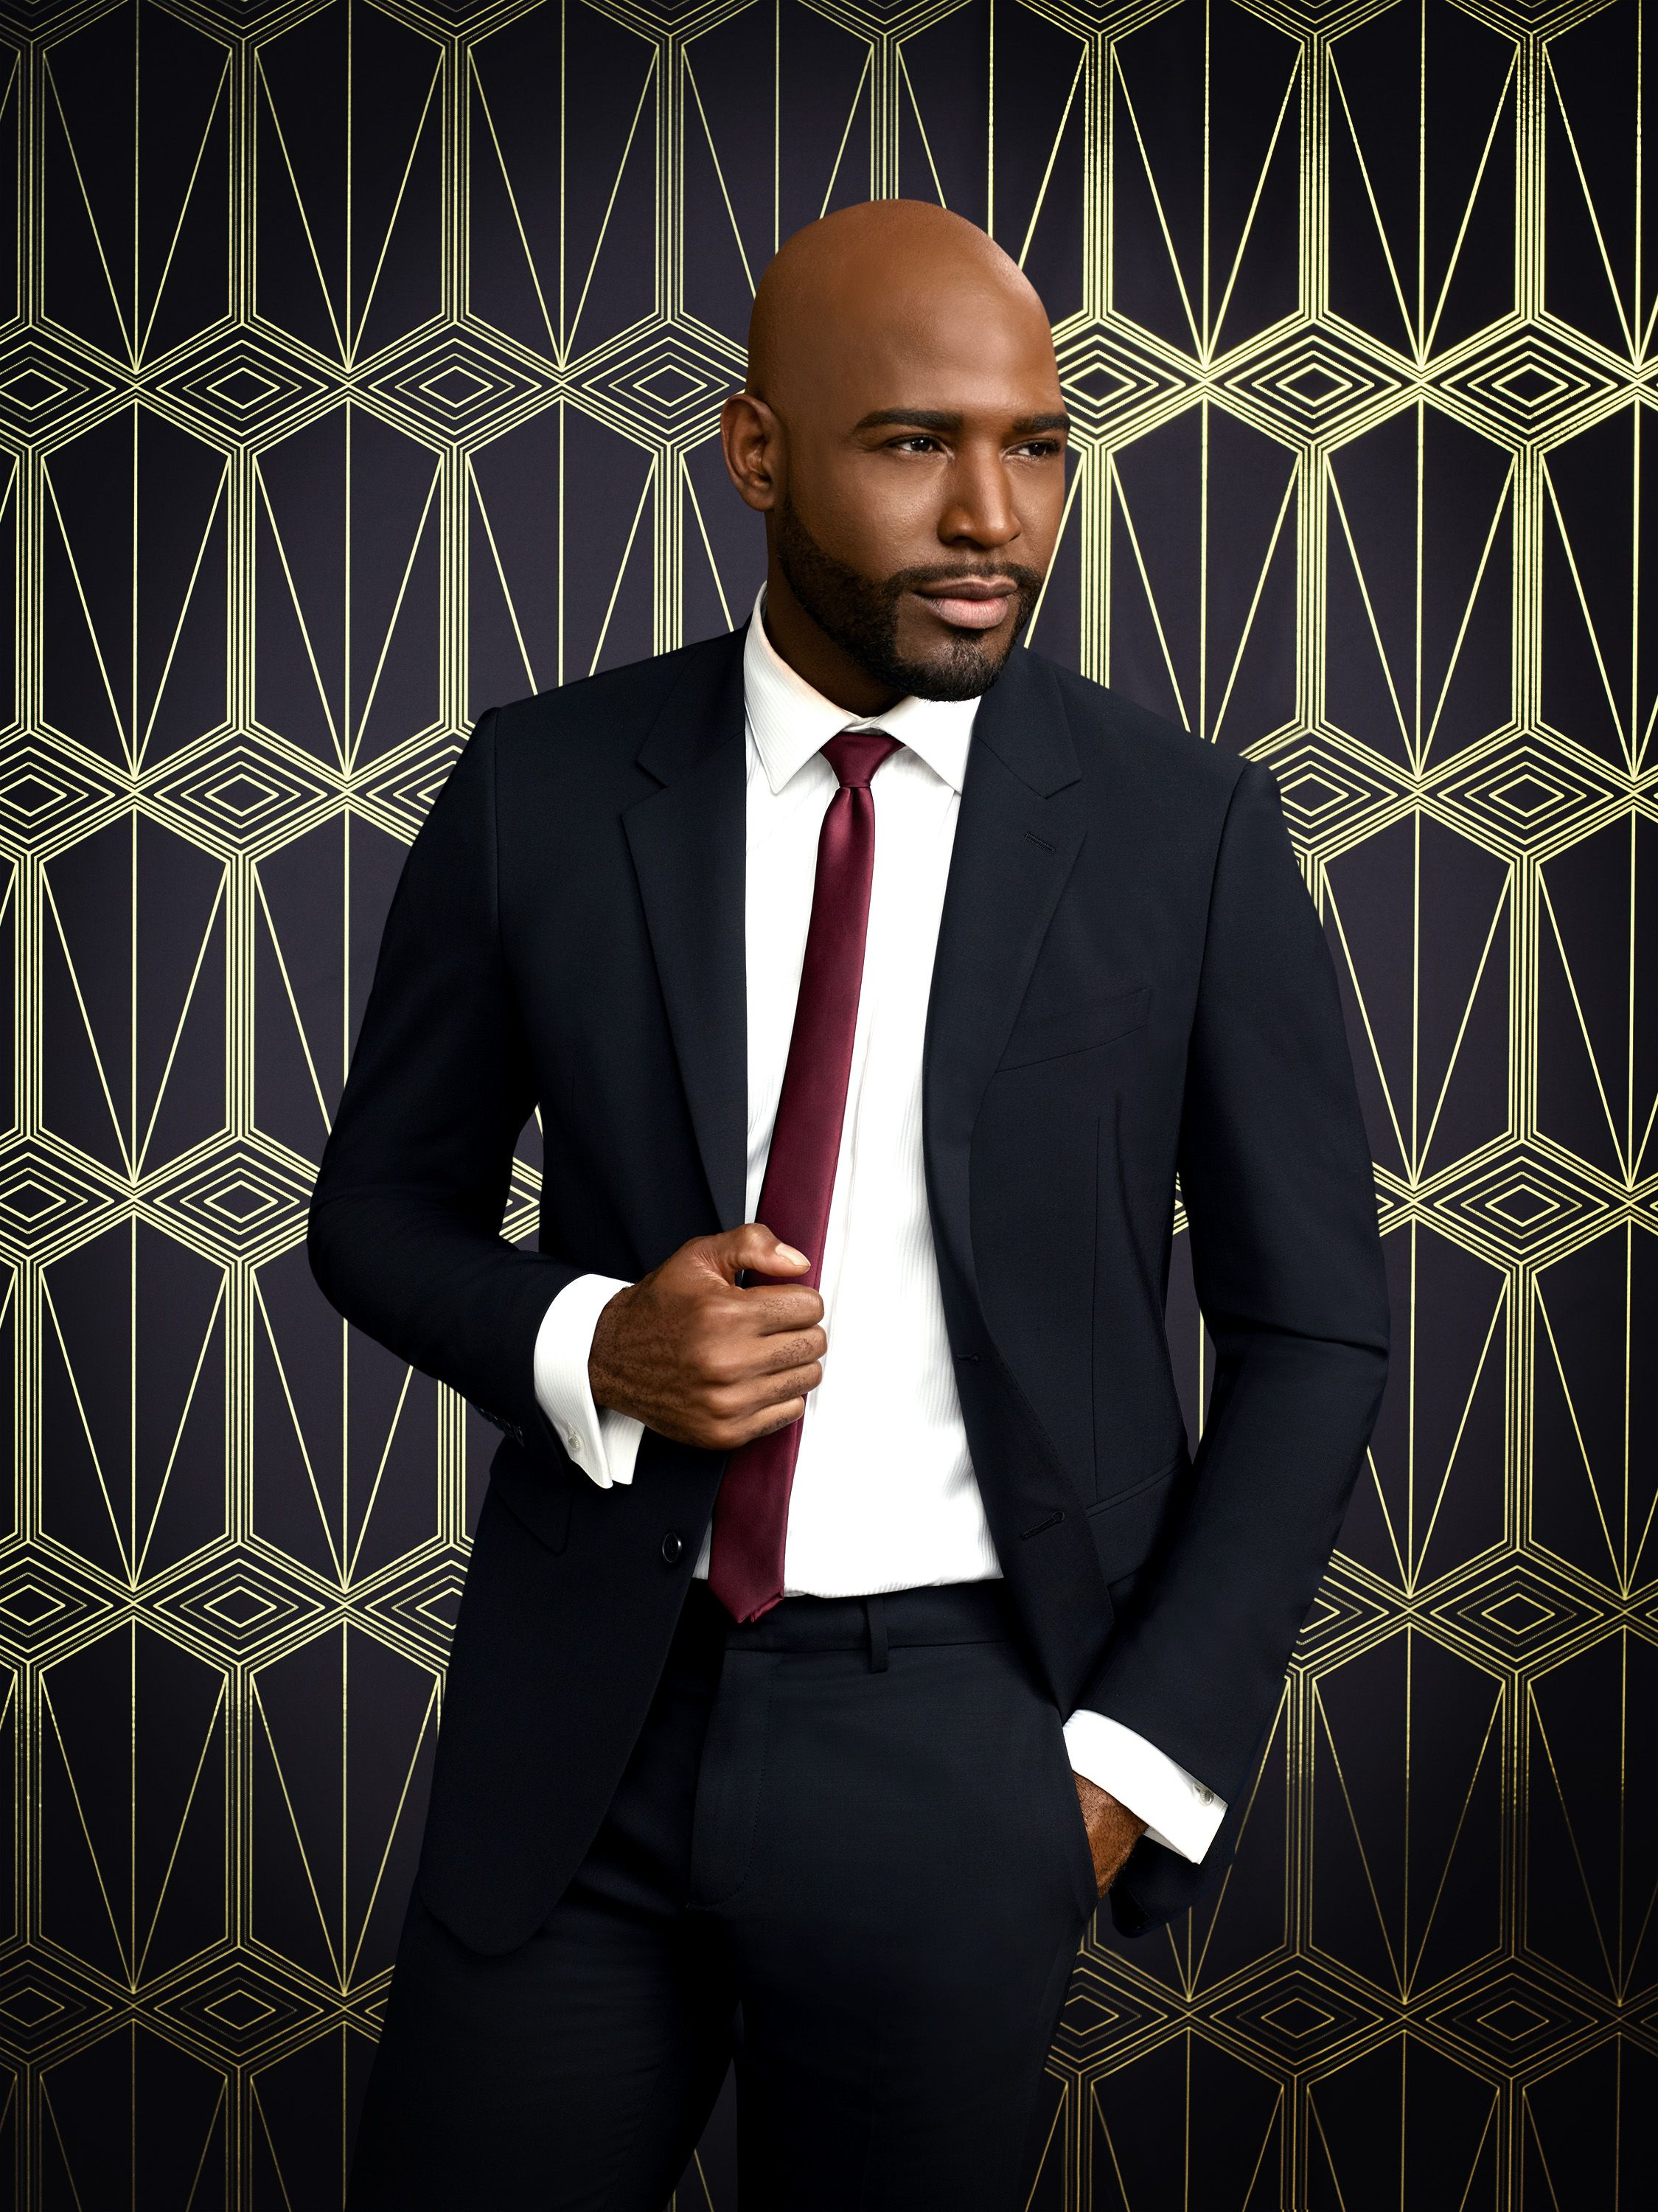 'Queer Eye' Star Karamo Brown Kicks Off 'DWTS' Season With a Naked Instagram Photo